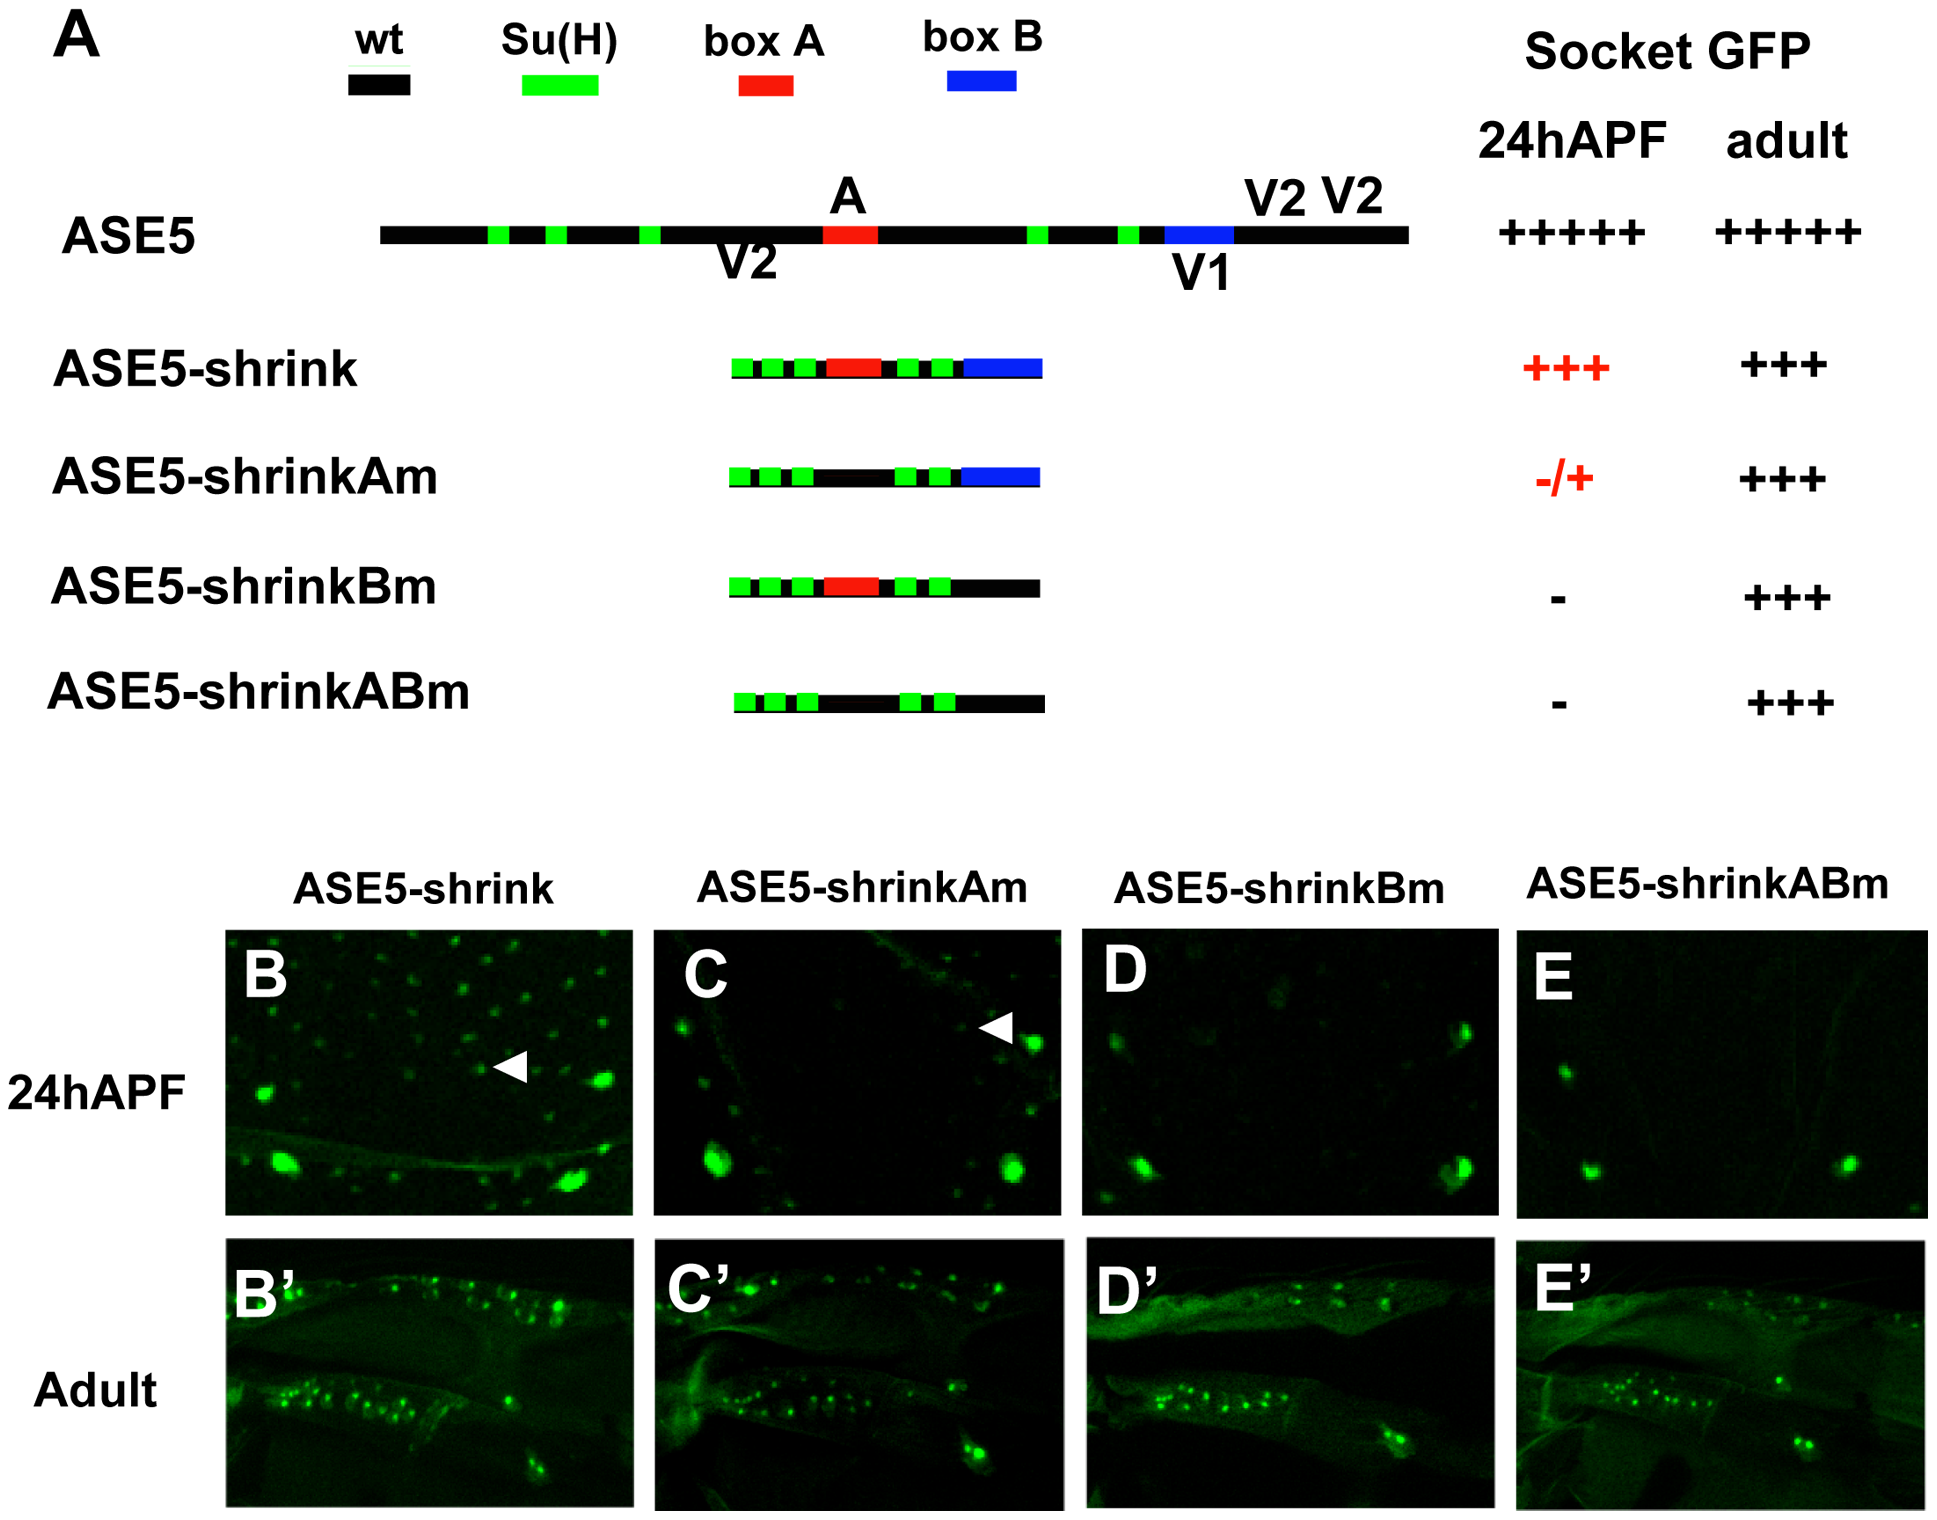 More compact positioning of required motifs in ASE5 increases their activity.